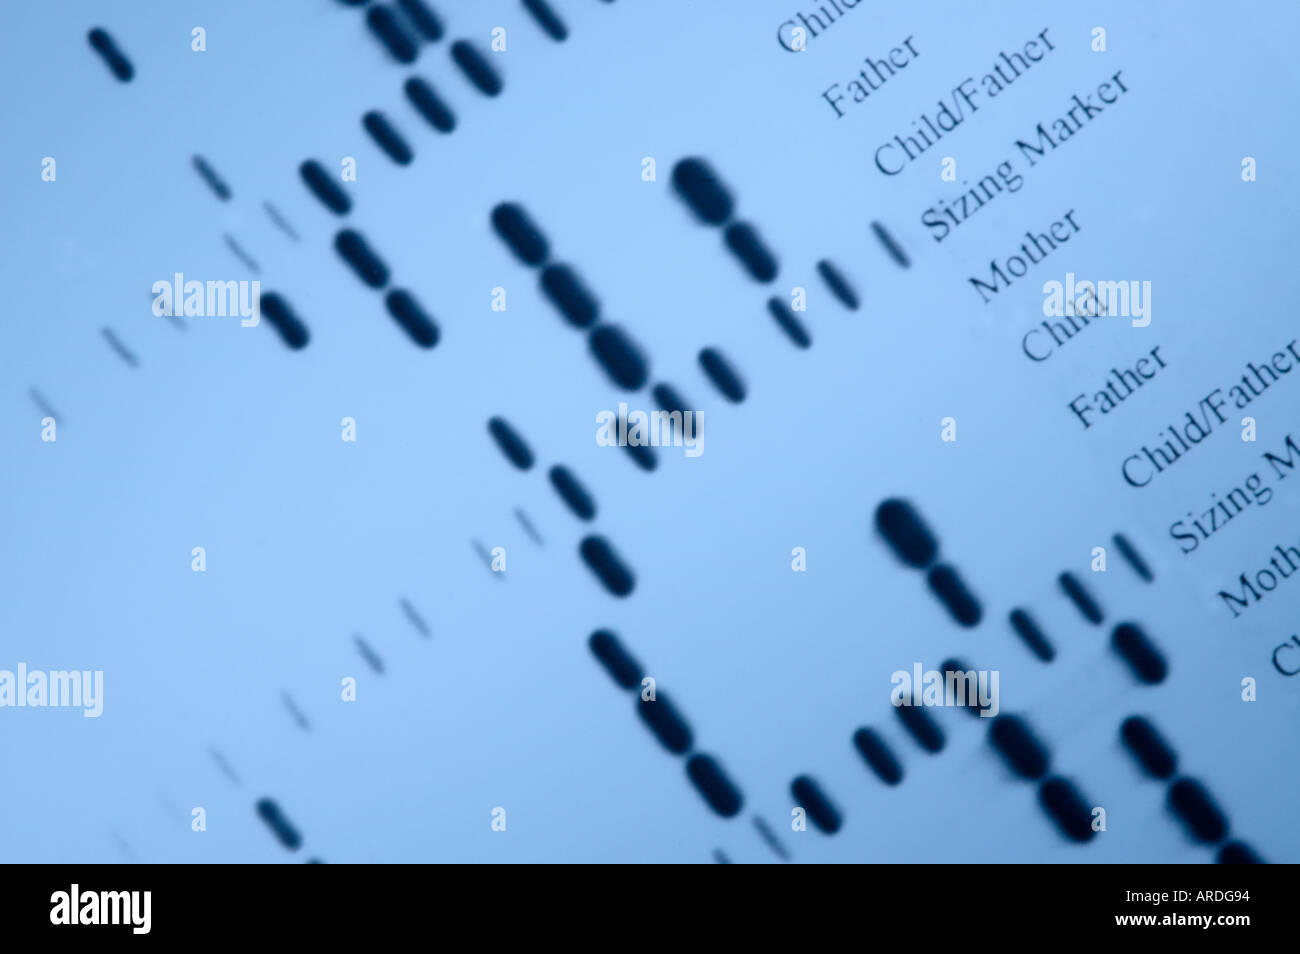 Autoradiograph of 'DNA fingerprints' from paternity determination investigations - Stock Image